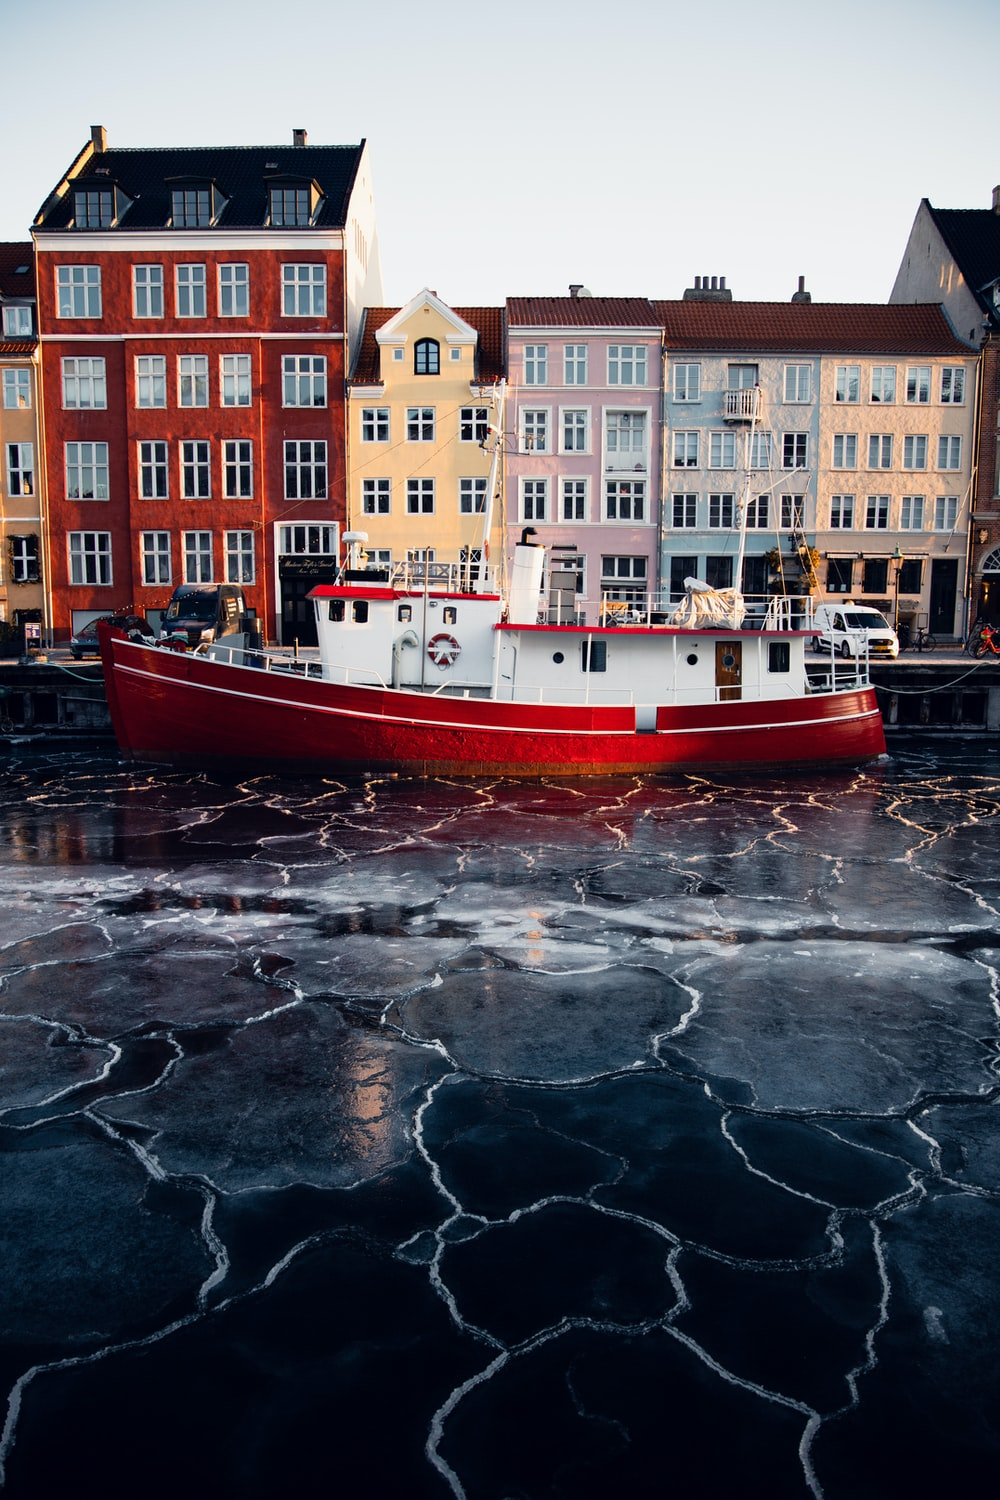 red and white boat on water